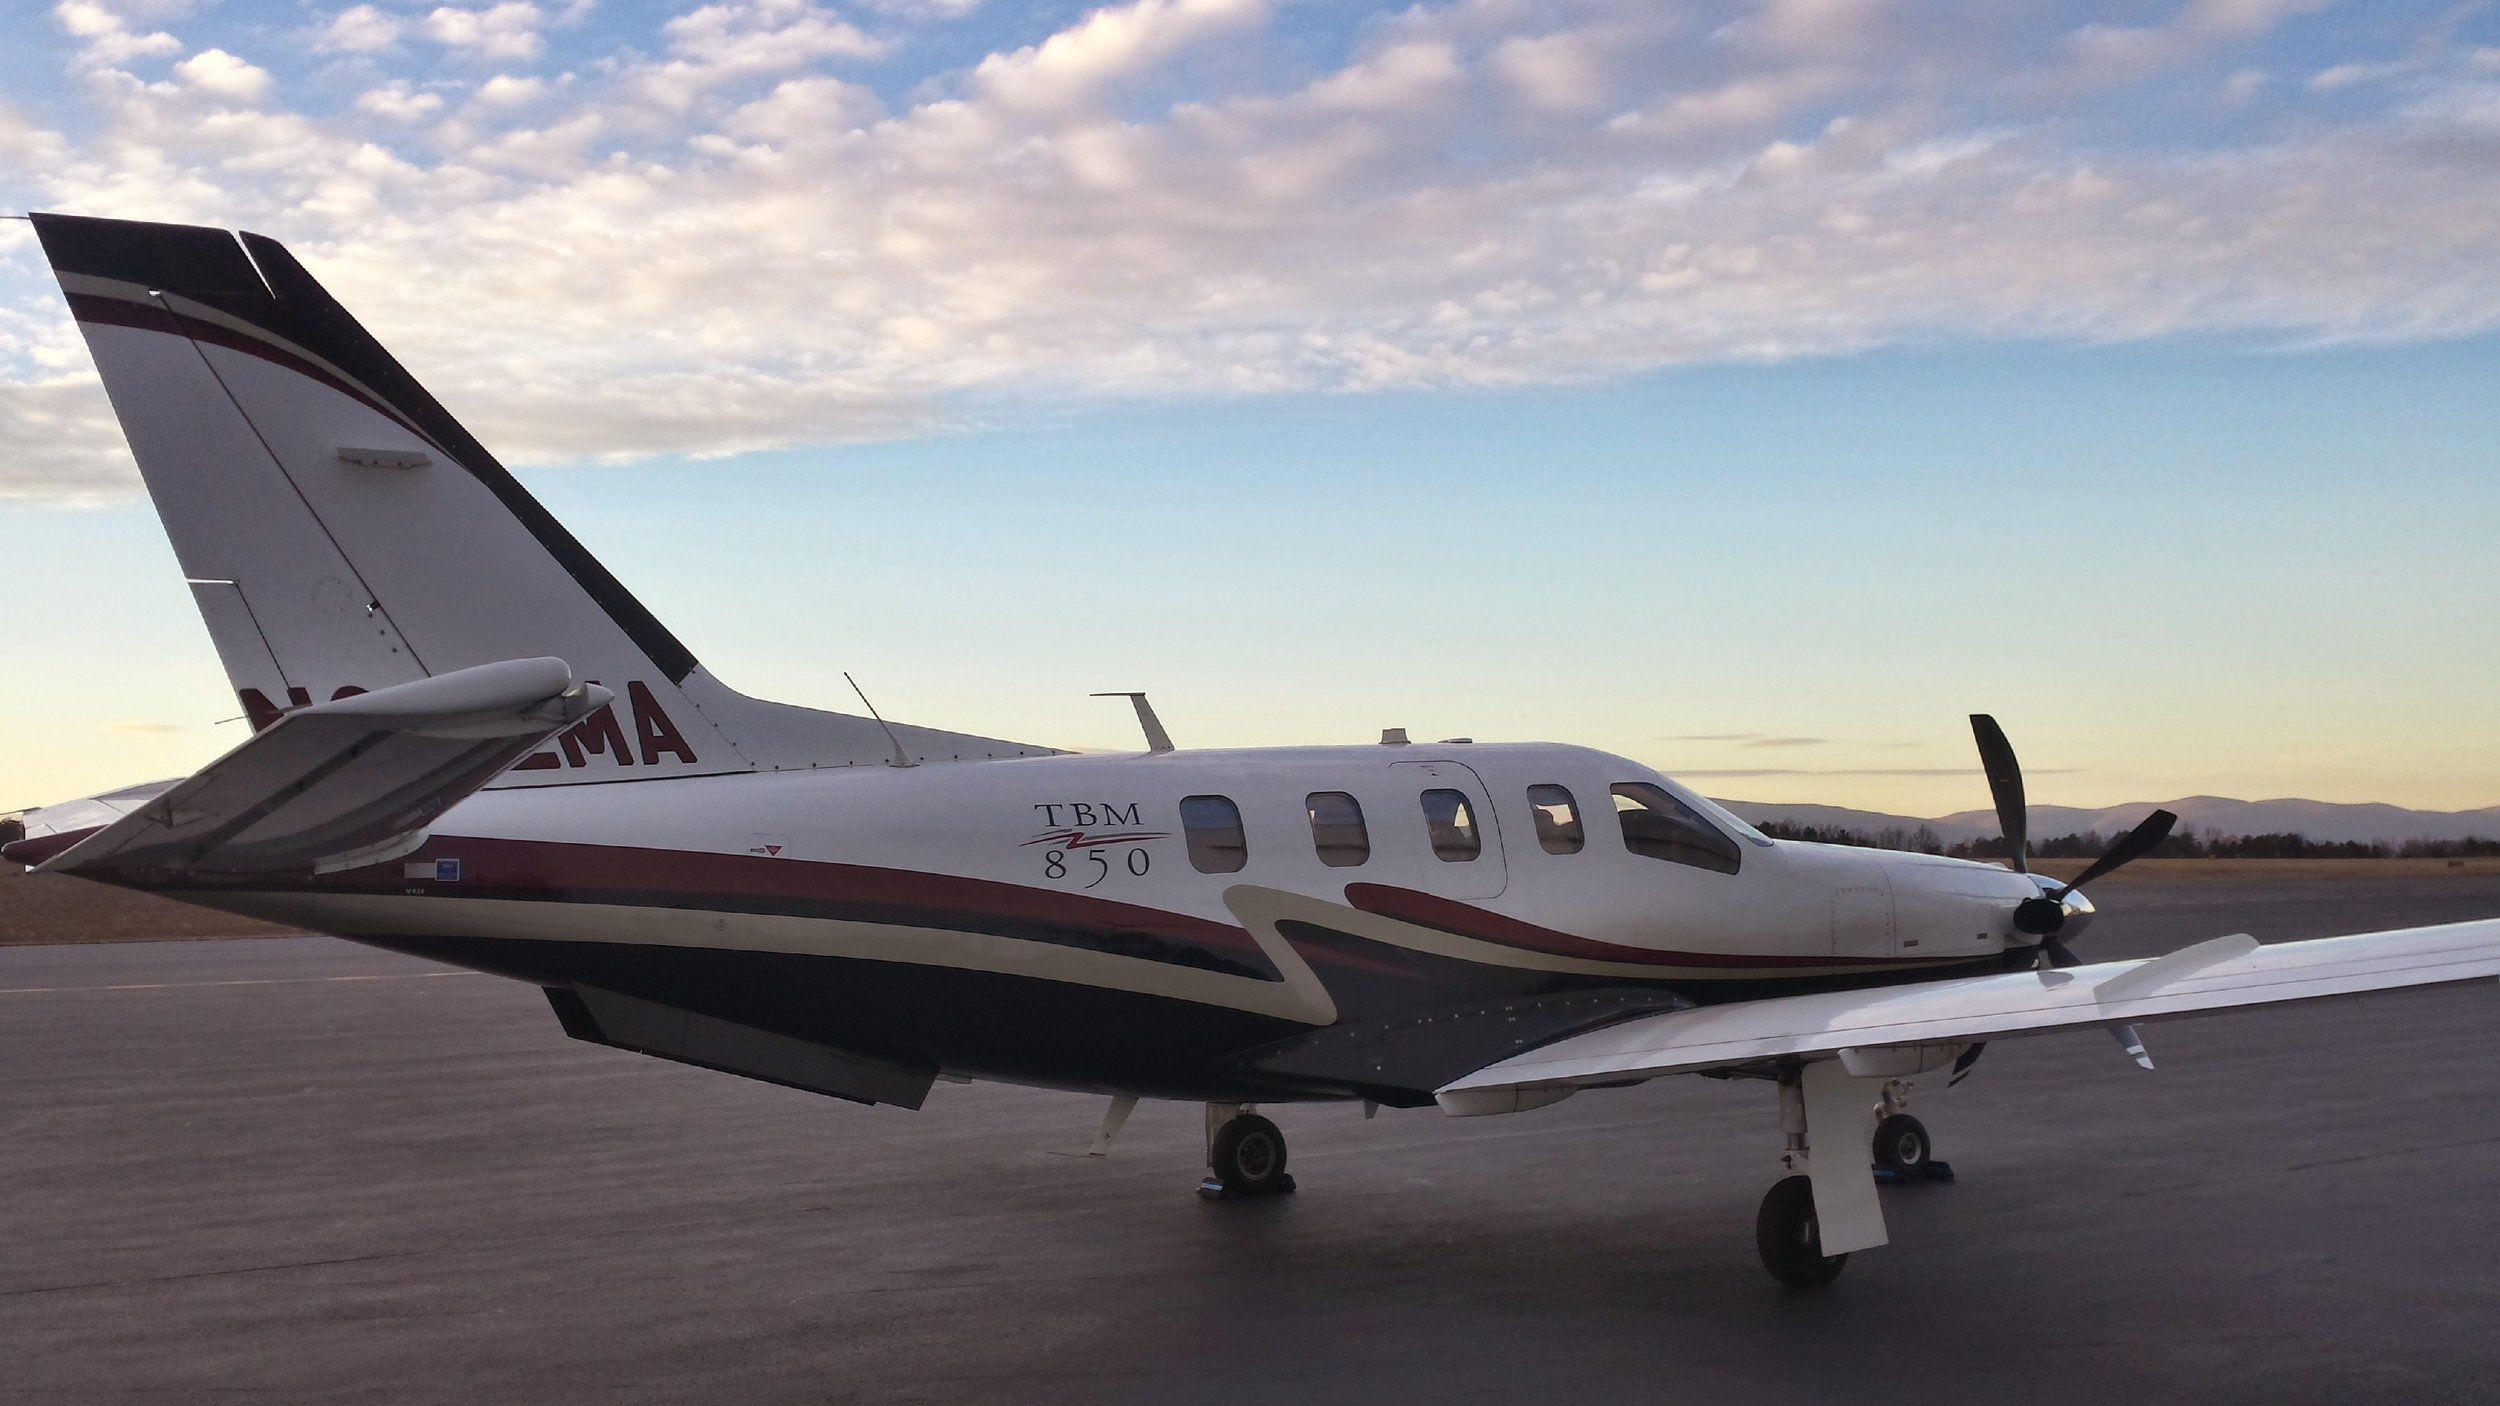 Get where you need to be- Fast! - The TBM 850 can carry five adults in quiet, air-conditioned comfort, climb to 31,000 ft in as little as 20 minutes, fly for over 1,200 nm with NBAA IFR reserves and then slip into a 3,000 ft strip or a mountain runway.